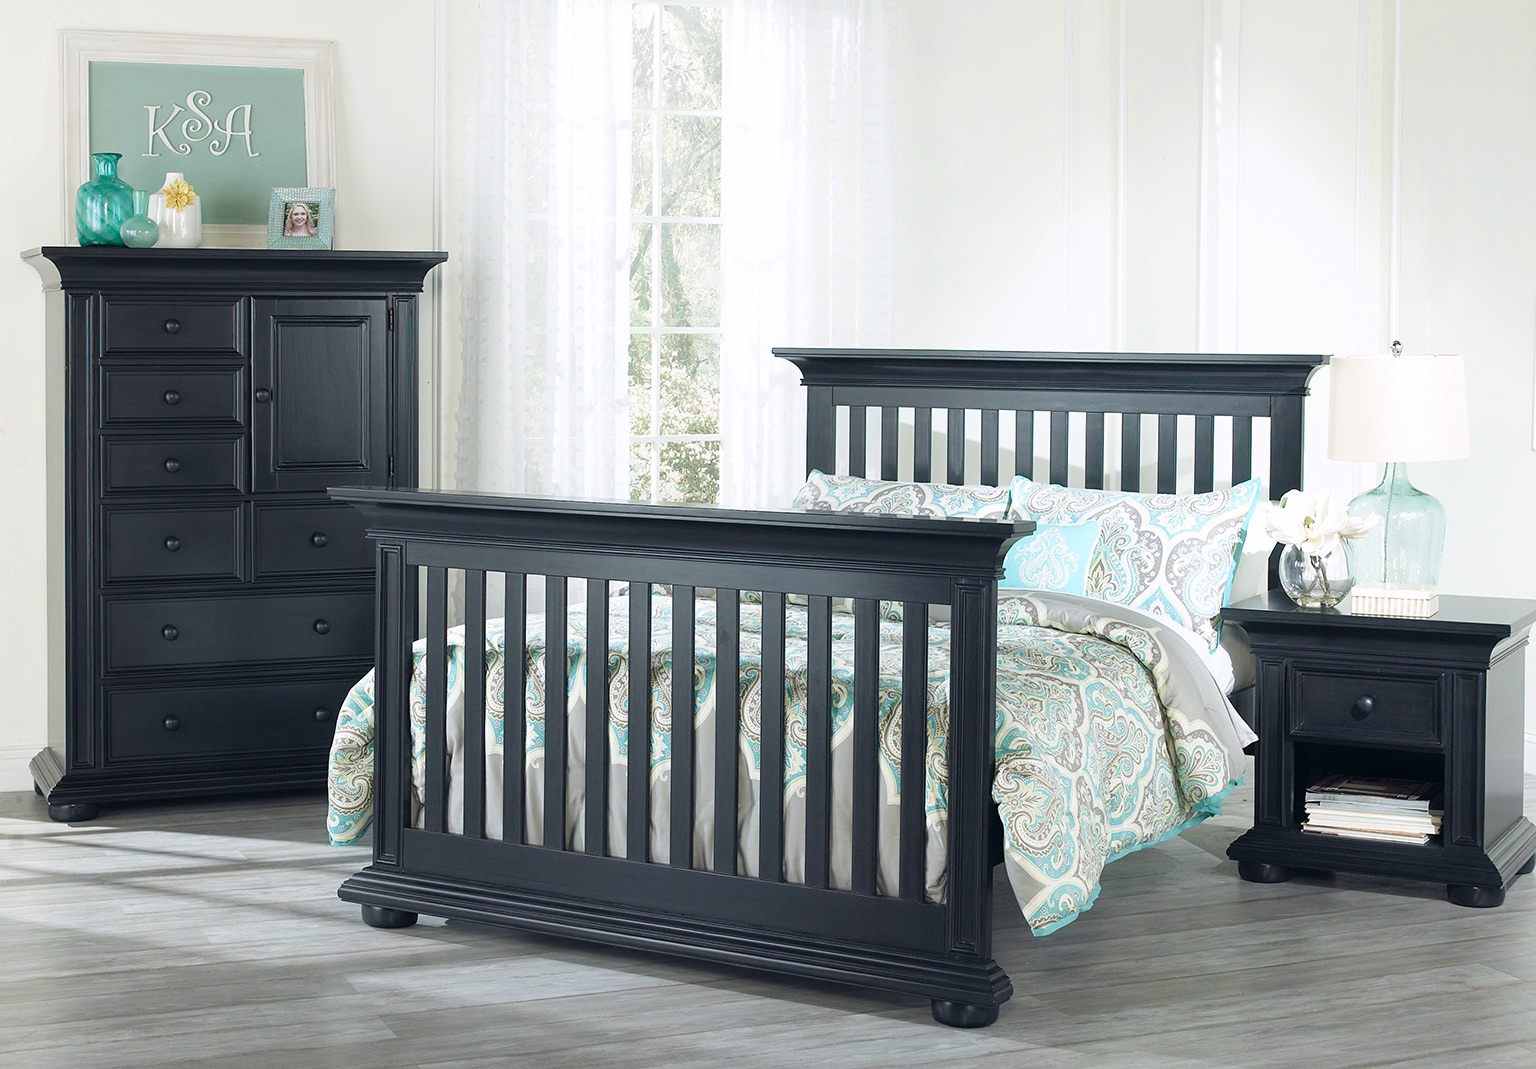 Full bed conversion kit harlow navy midnight slate for Harlowe bed